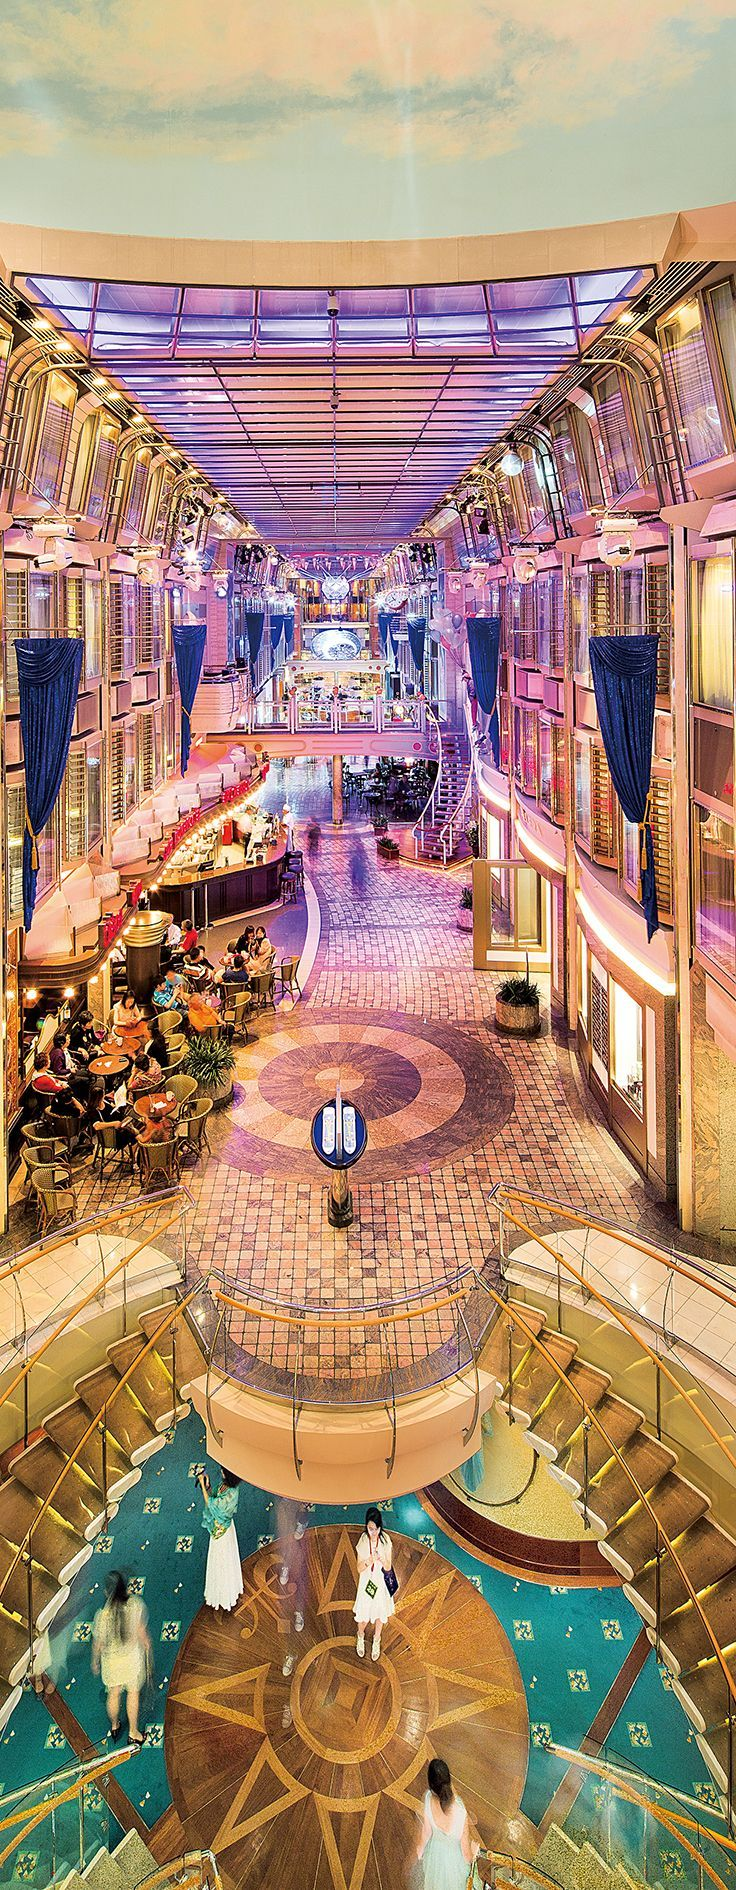 Mariner of the Seas. Parades, dancing, shops and bars—all before you even leave the ship.